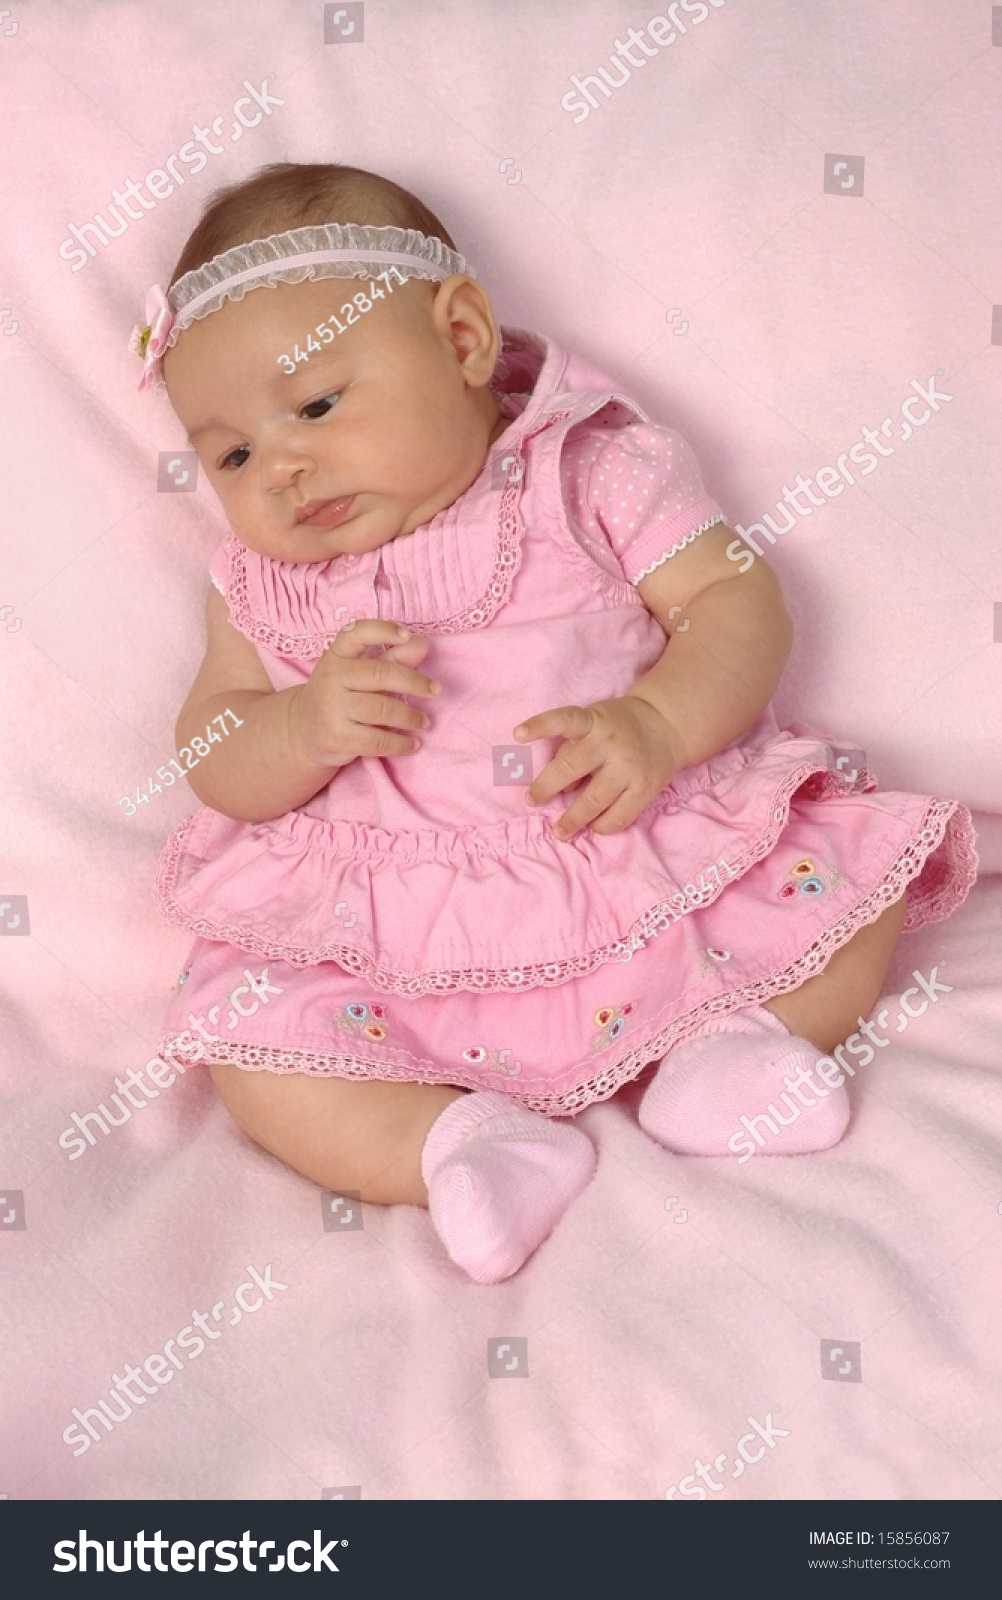 Baby Girls' Clothing from shinobitech.cf Whether you need a breathable bodysuit set for a sunny day at the park or a ruffled dress and diaper cover for a special occasion, shinobitech.cf offers a wide selection of essentials when it comes to baby girls' clothing.